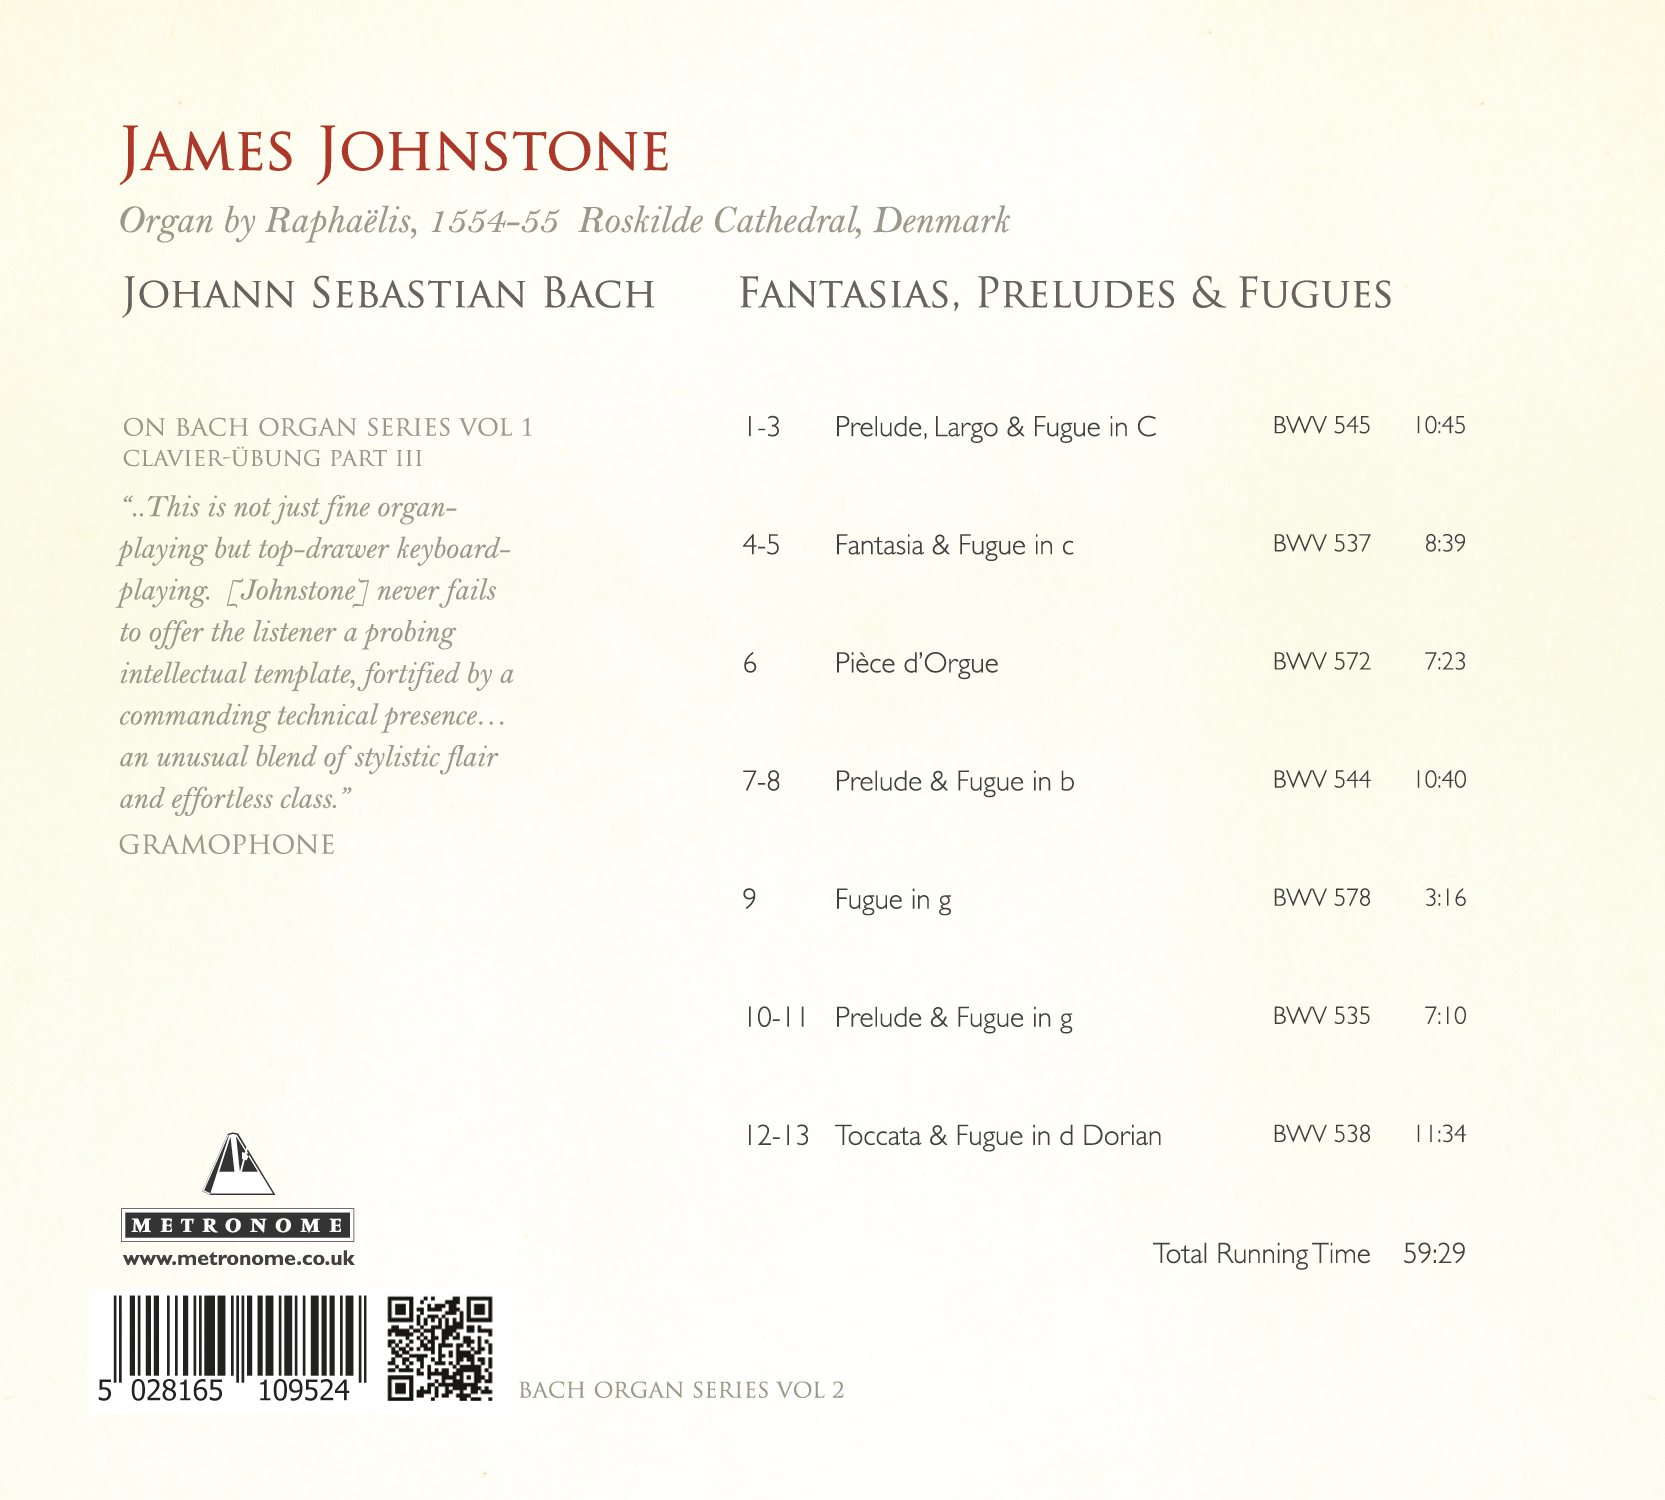 METCD 1095 James Johnstone-Bach Roskilde Back Track Listing